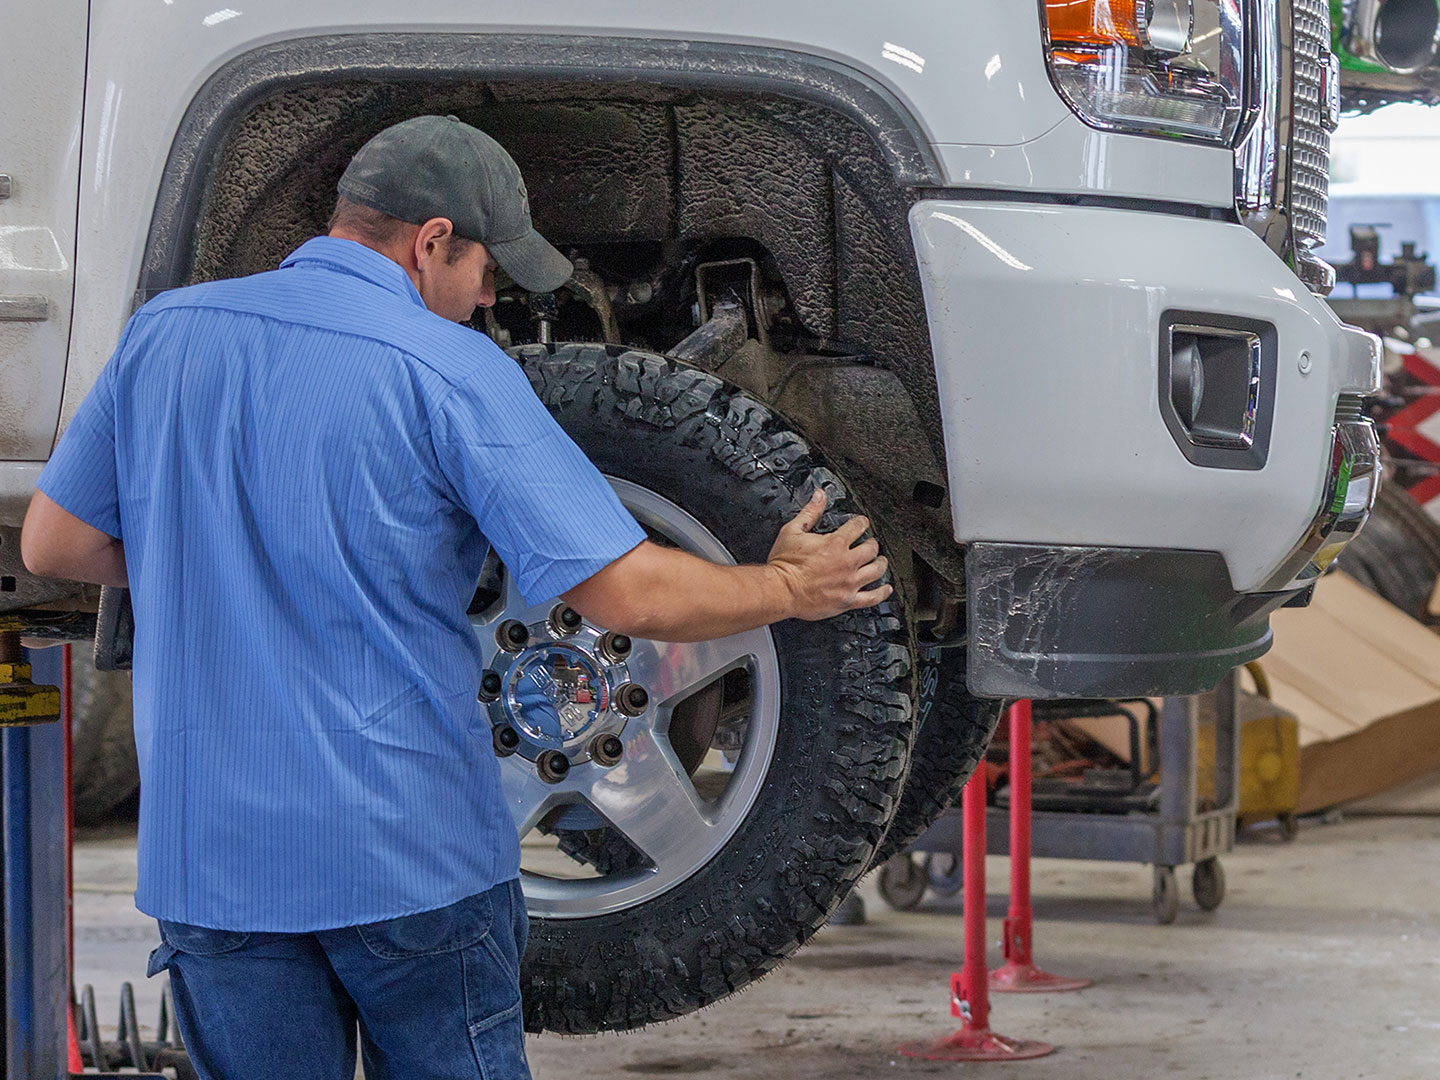 Wheel Balancing - A technician putting a tire back onto a lifted truck